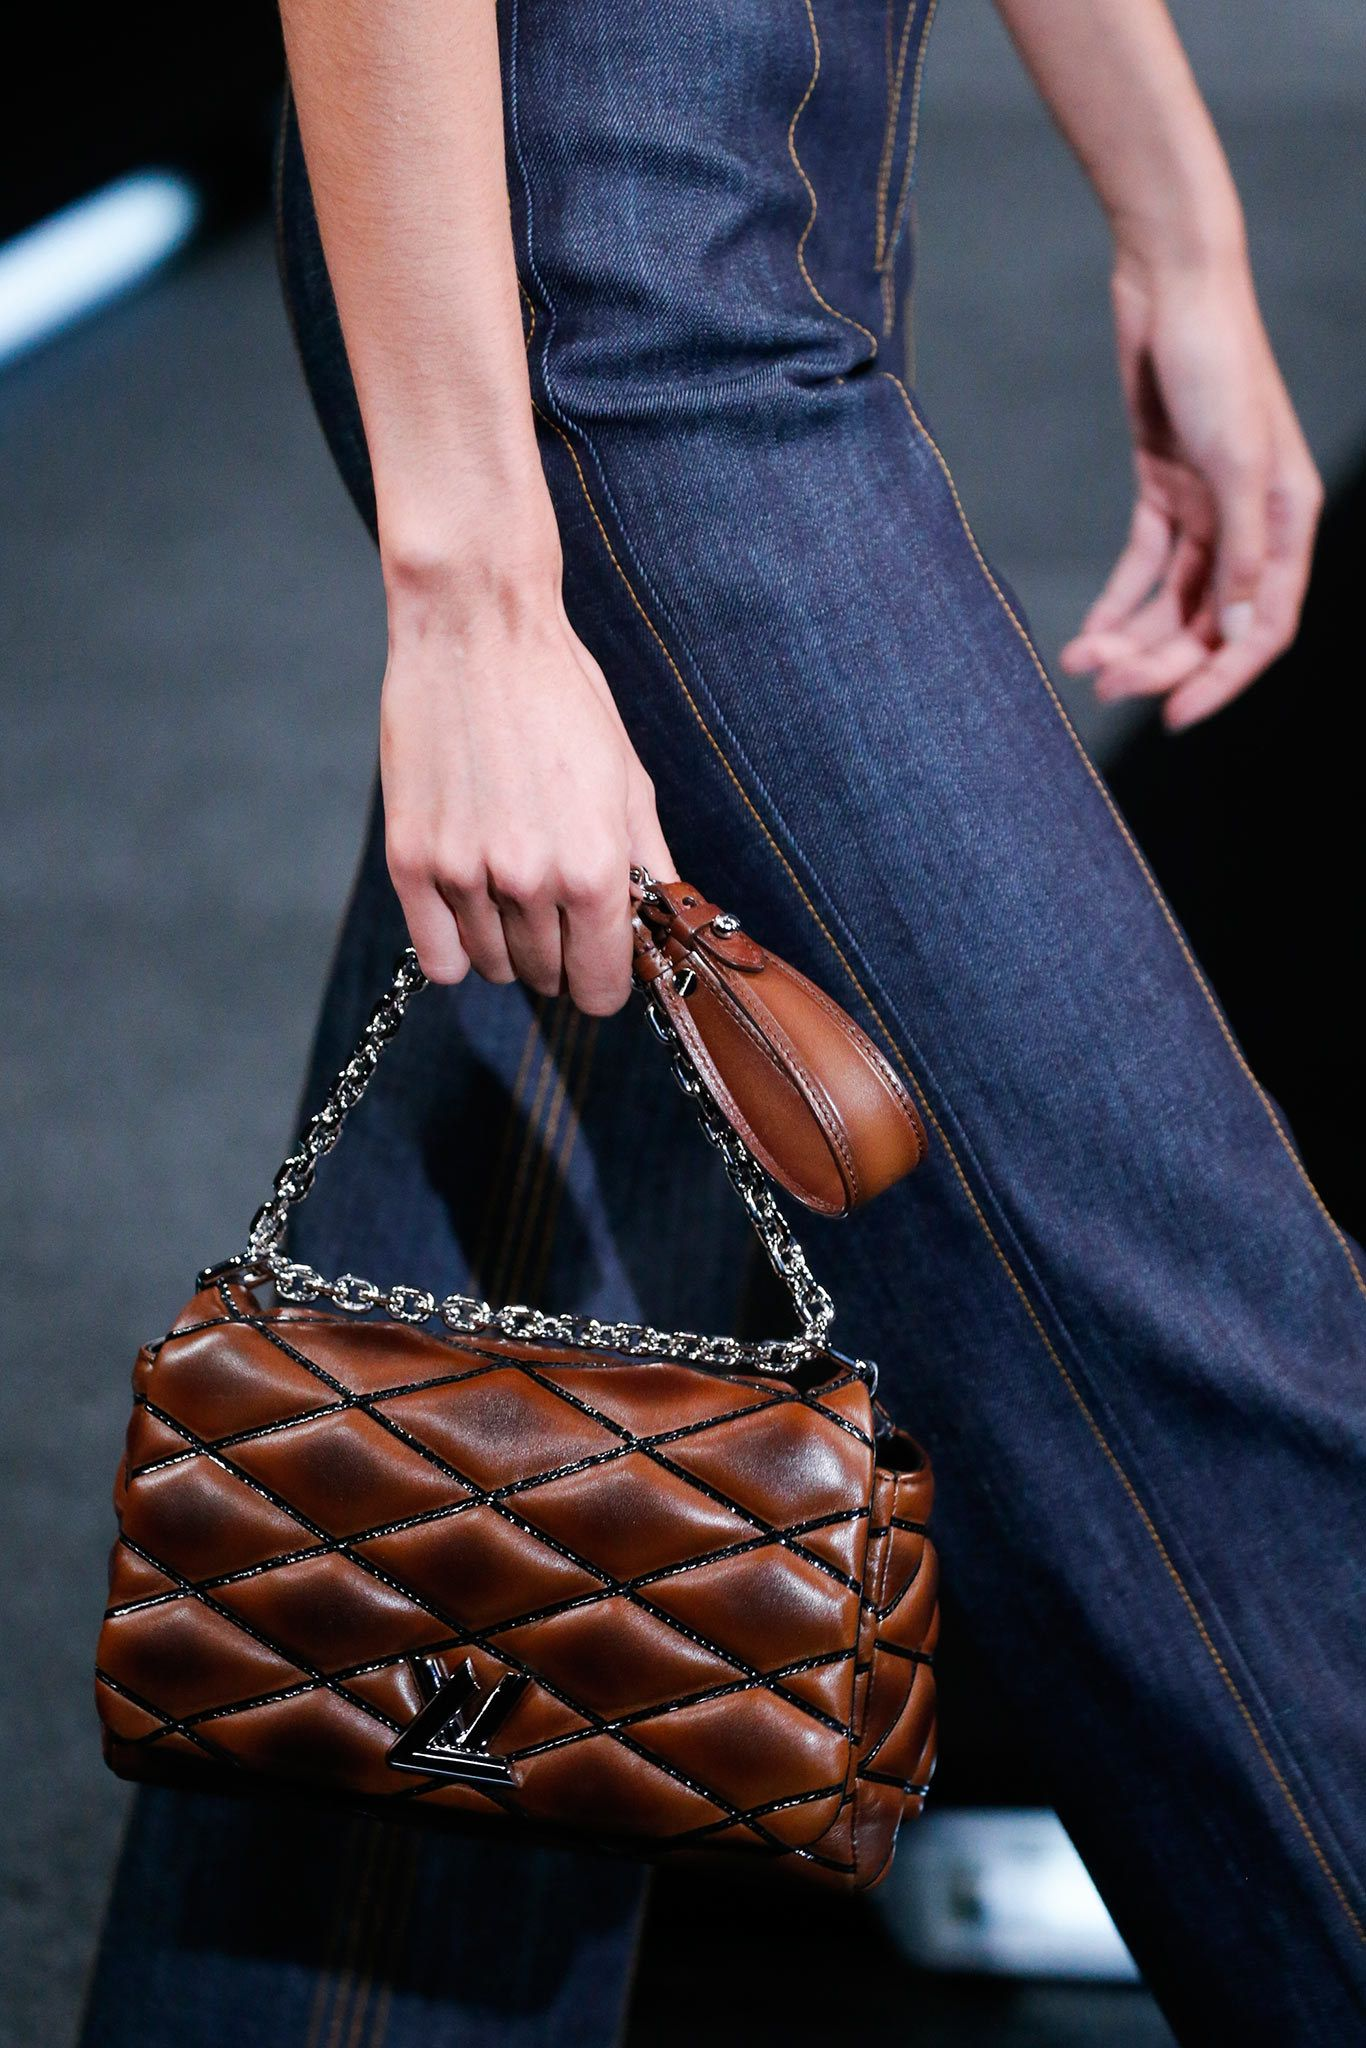 ea1727c67bf1 Louis Vuitton Spring 2015 Ready-to-Wear Accessories Photos - Vogue